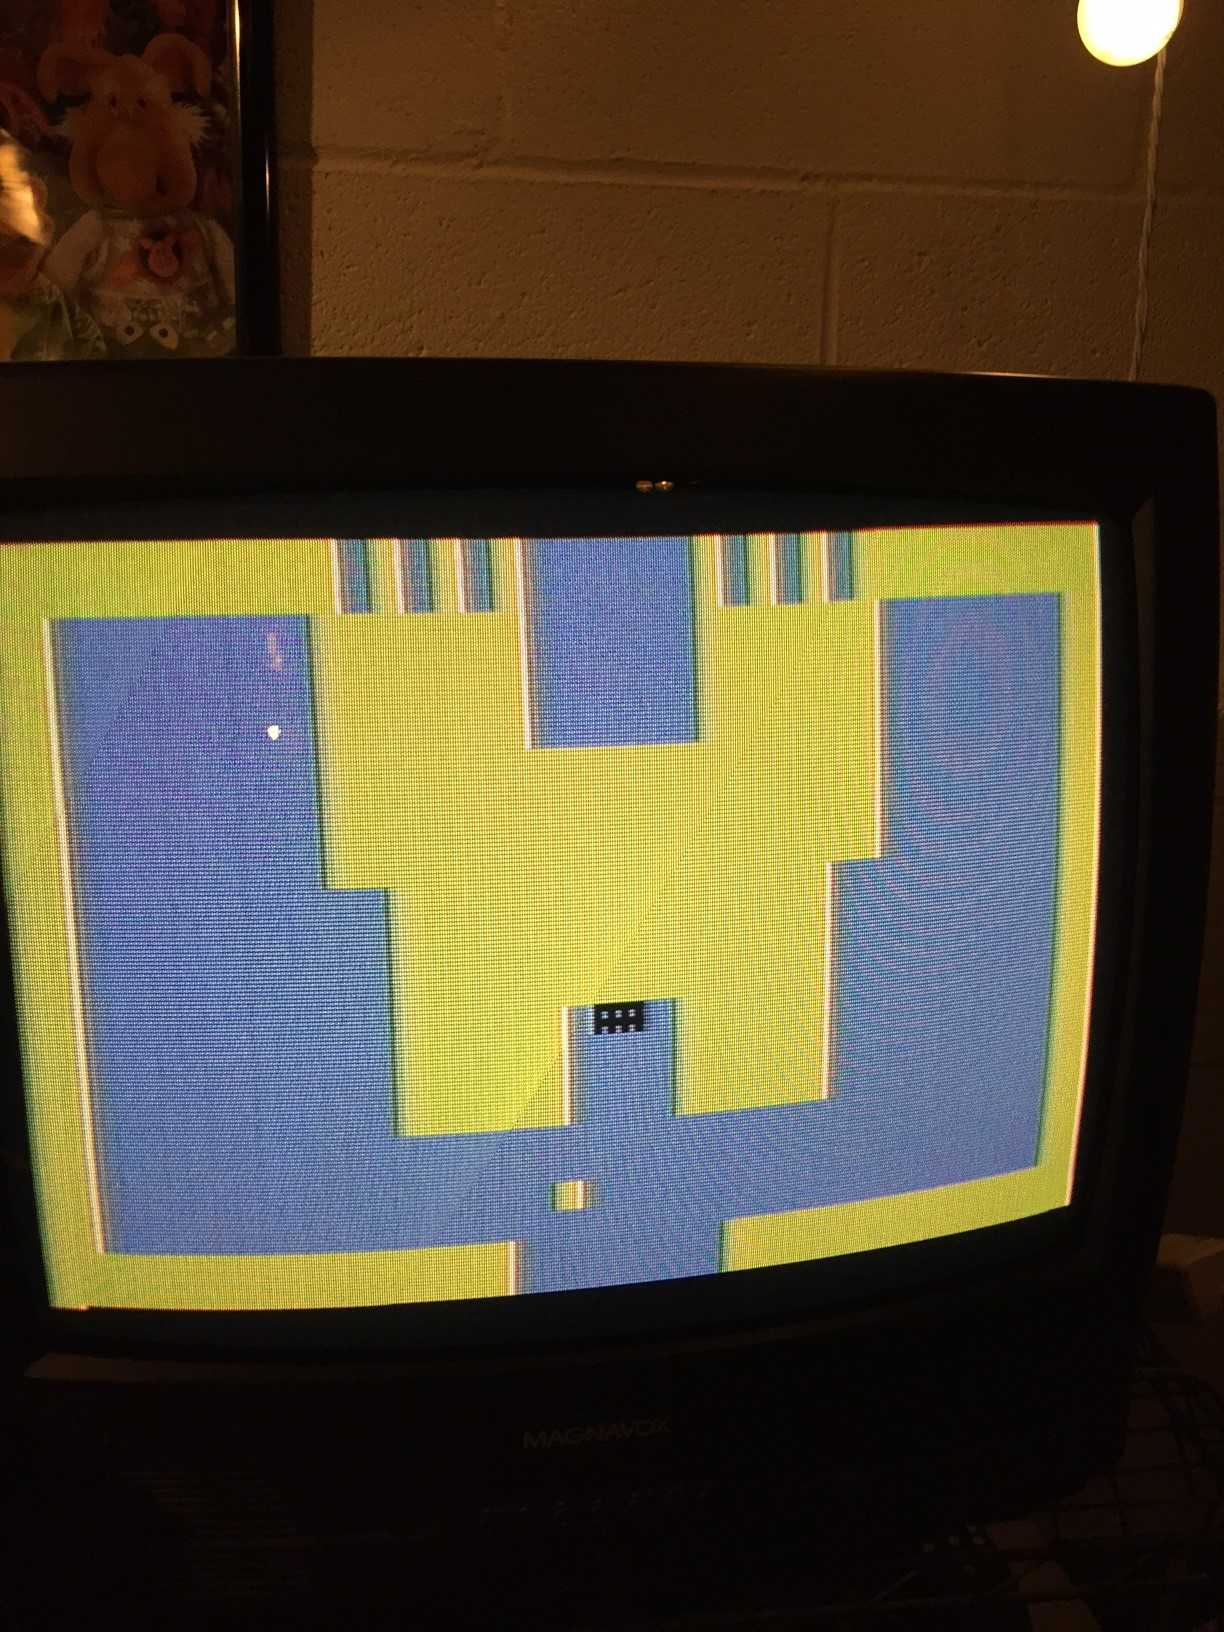 Adventure Acid Trip - Atari 2600 - AtariAge Forums